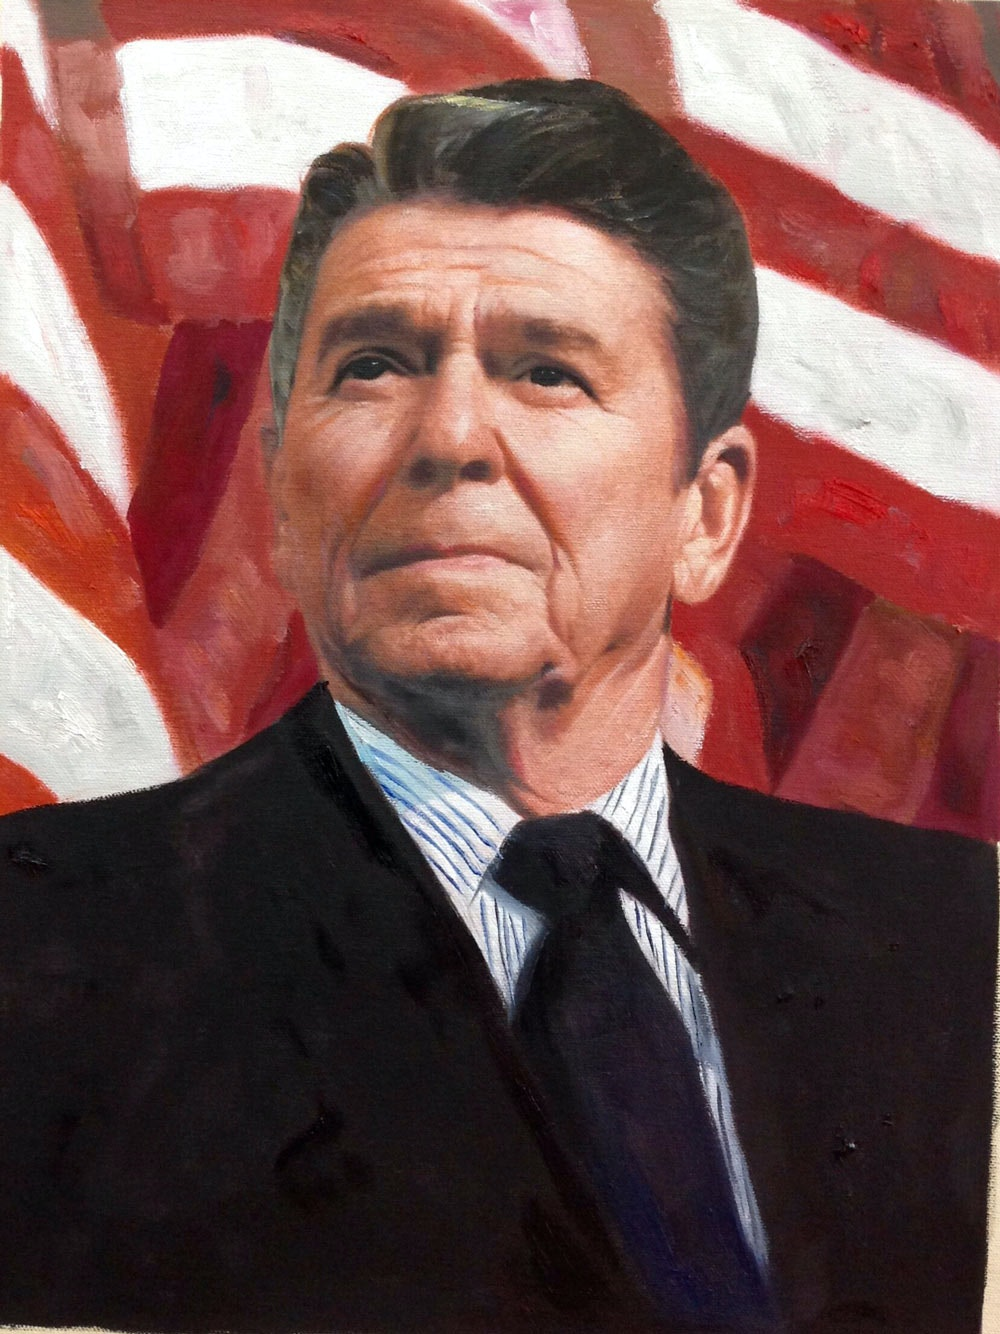 Custom Ronald Reagan Mixed-Media Portrait Oil Painting Artist-Rendered Painting